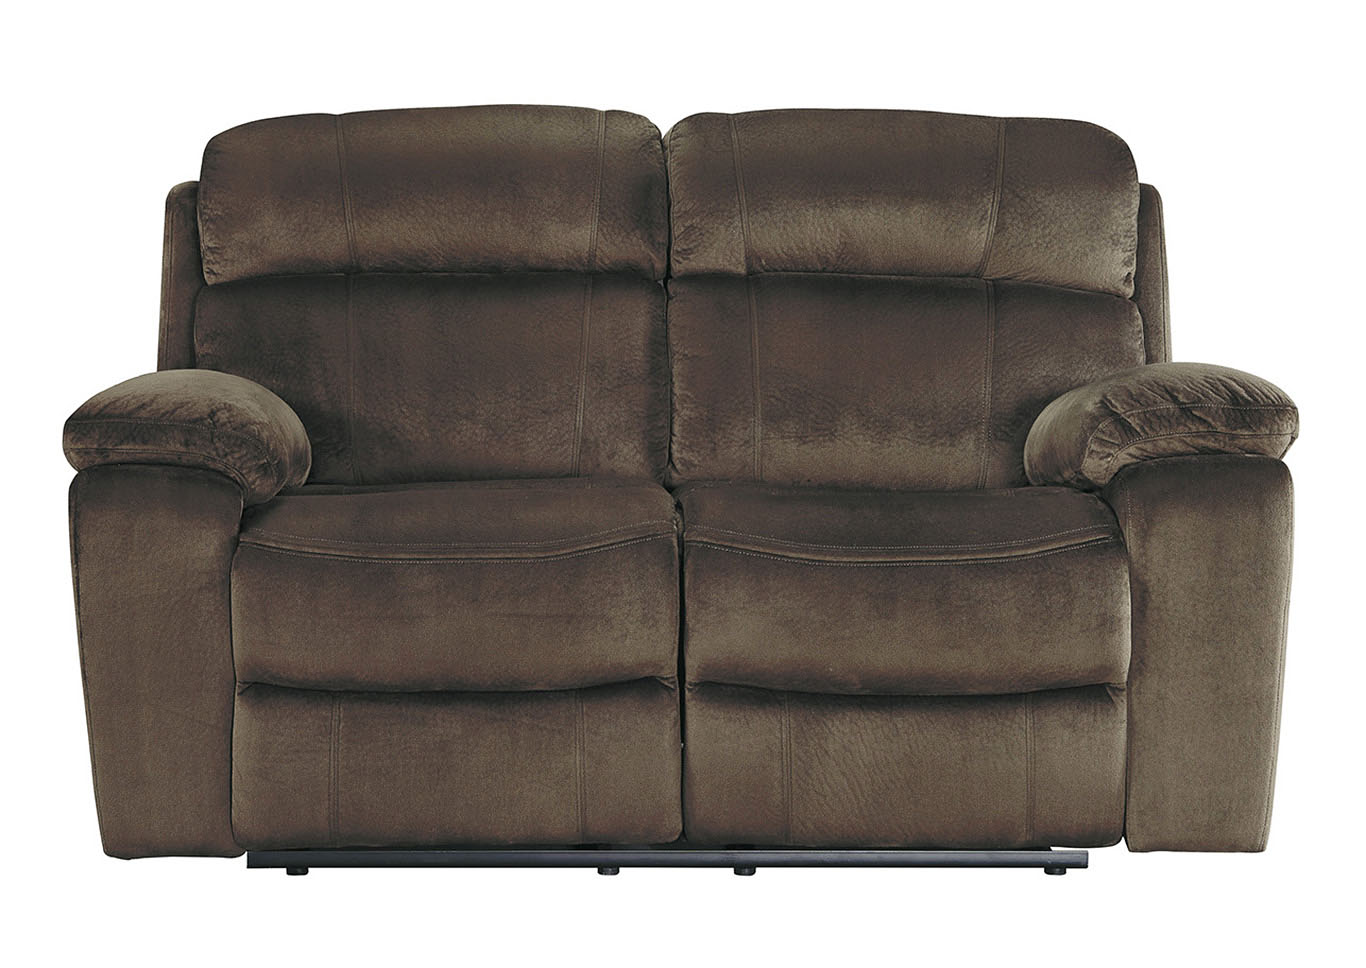 Uhland Chocolate Power Reclining Loveseat,Signature Design By Ashley